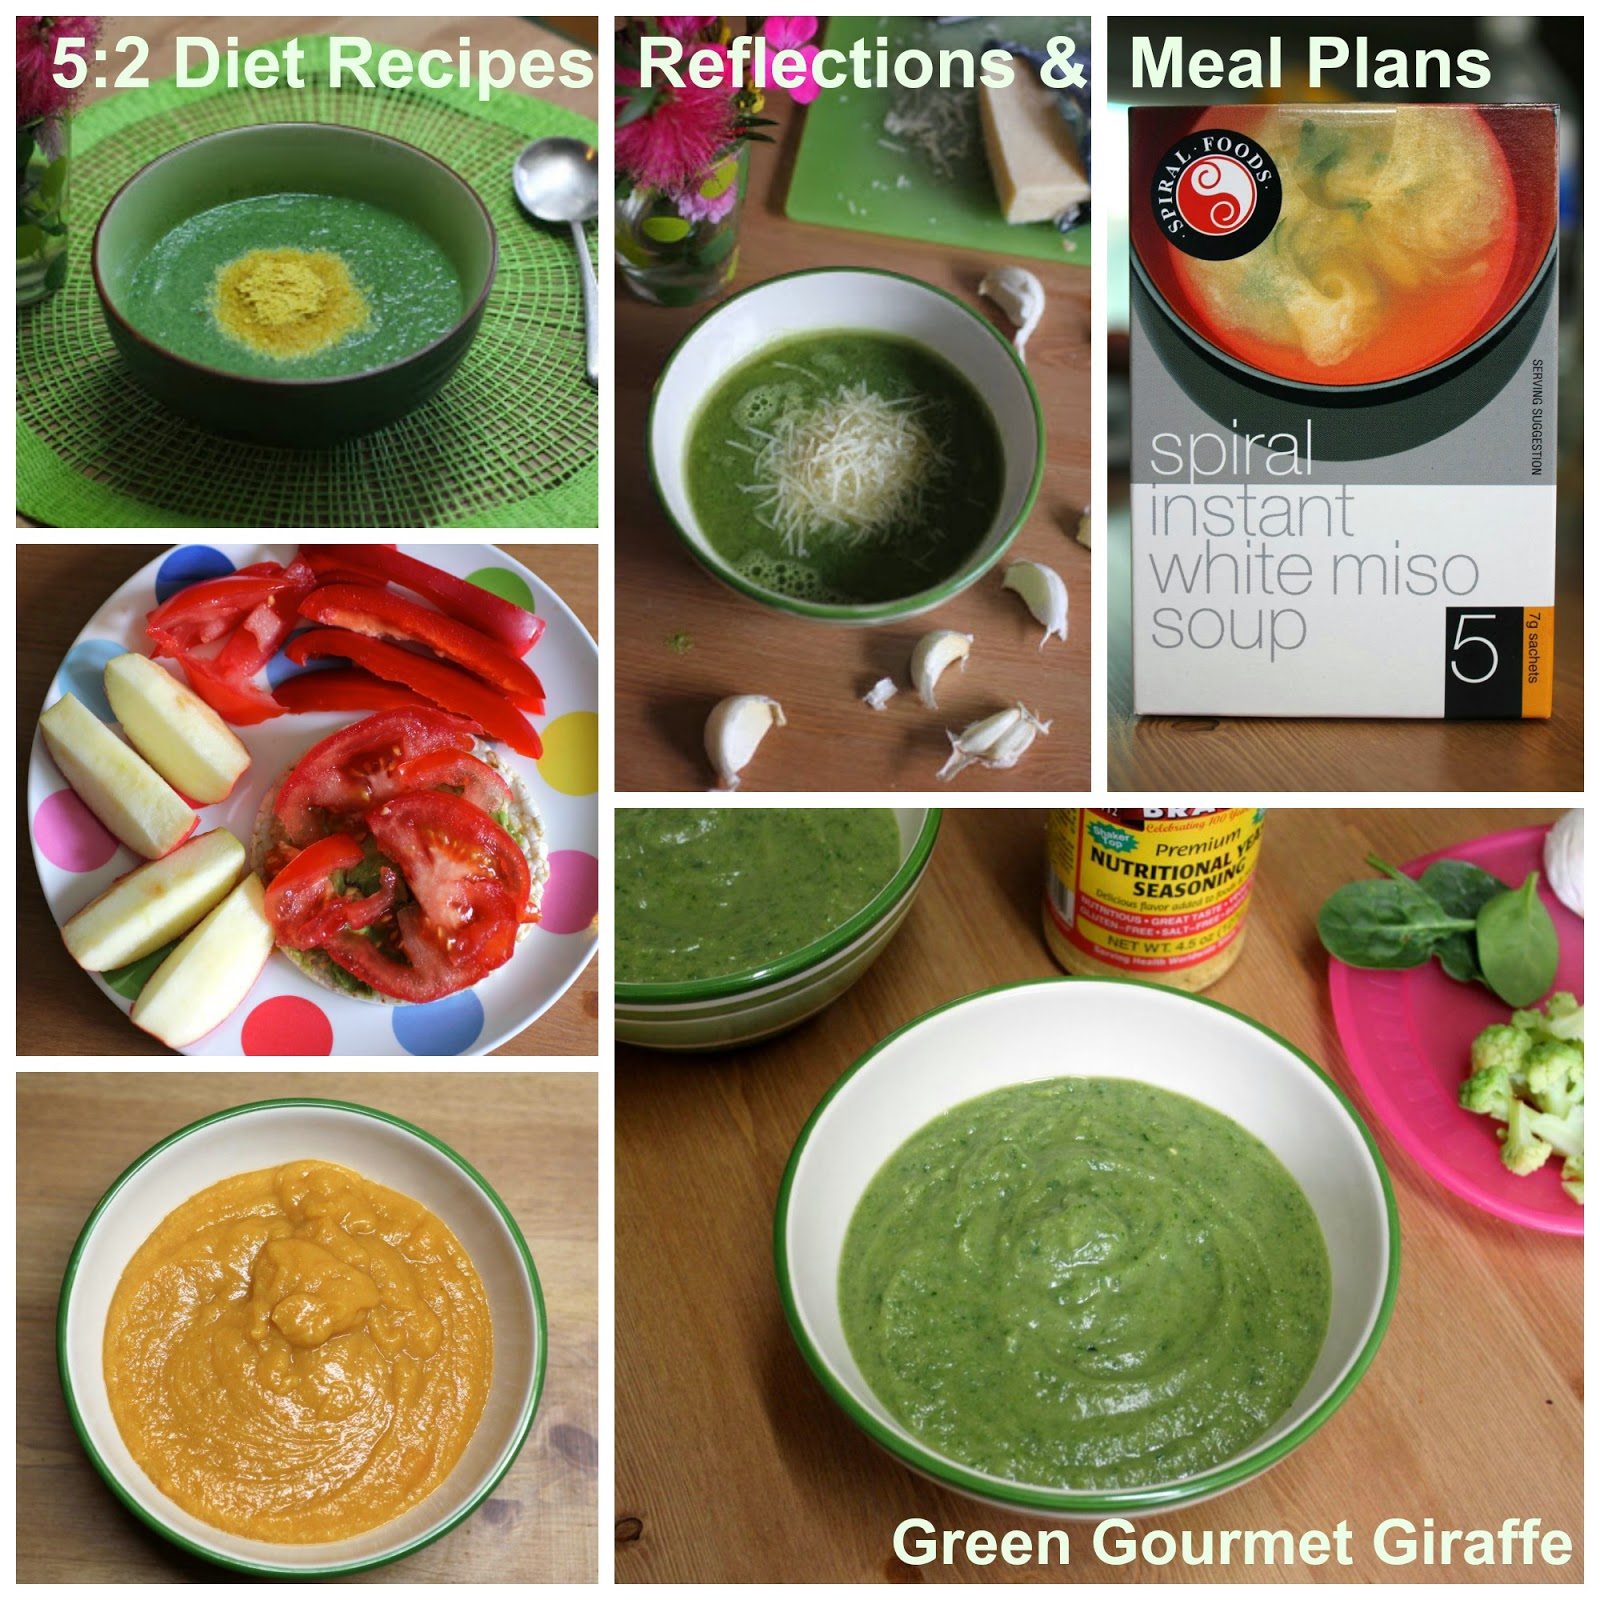 green gourmet giraffe 5 2 diet vegetarian meal plans reflections